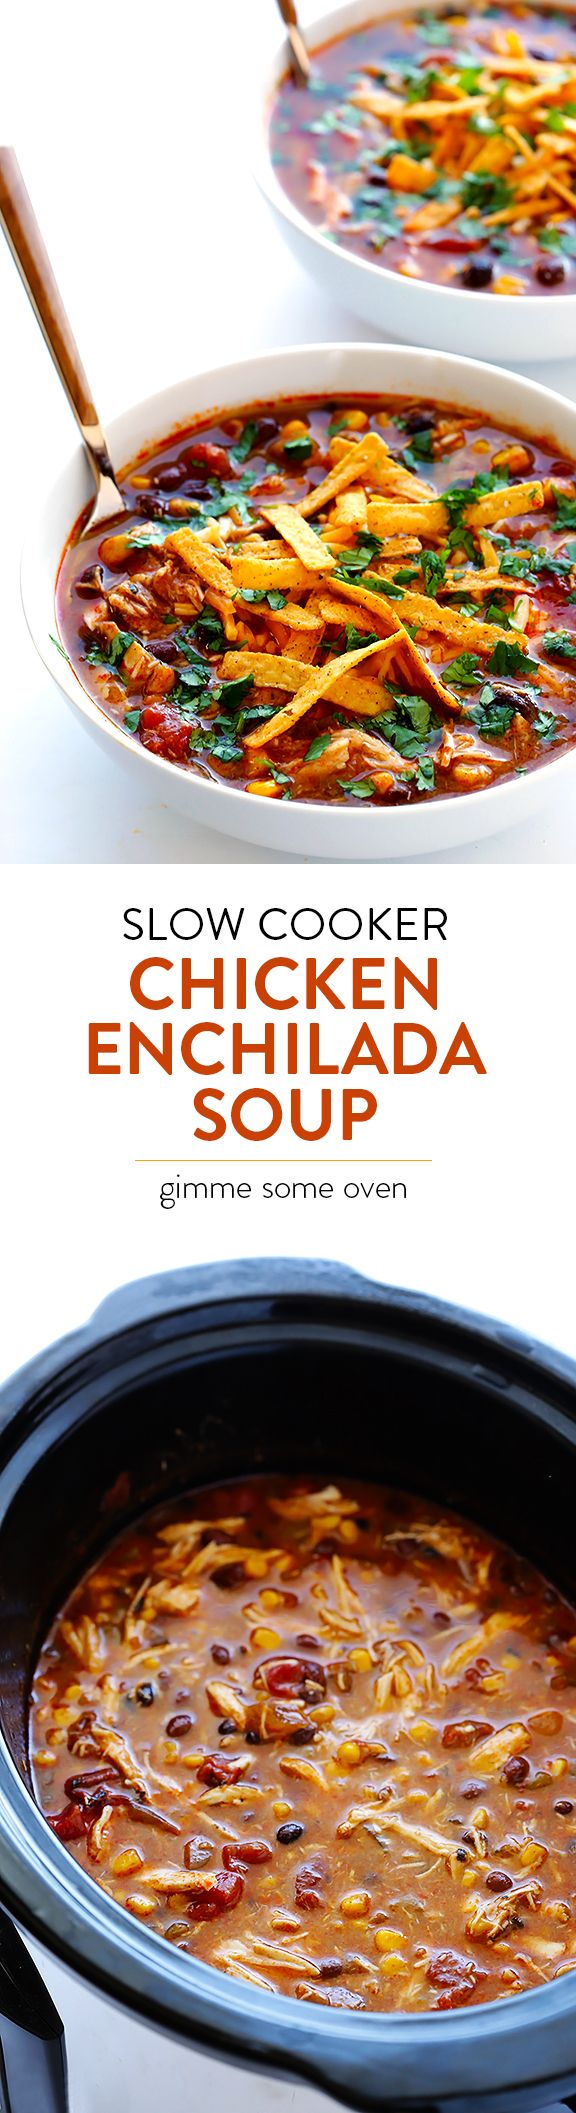 This slow cooker chicken enchilada soup recipe only takes about 10 minutes of prep time and it is oh-so-delicious and comforting.